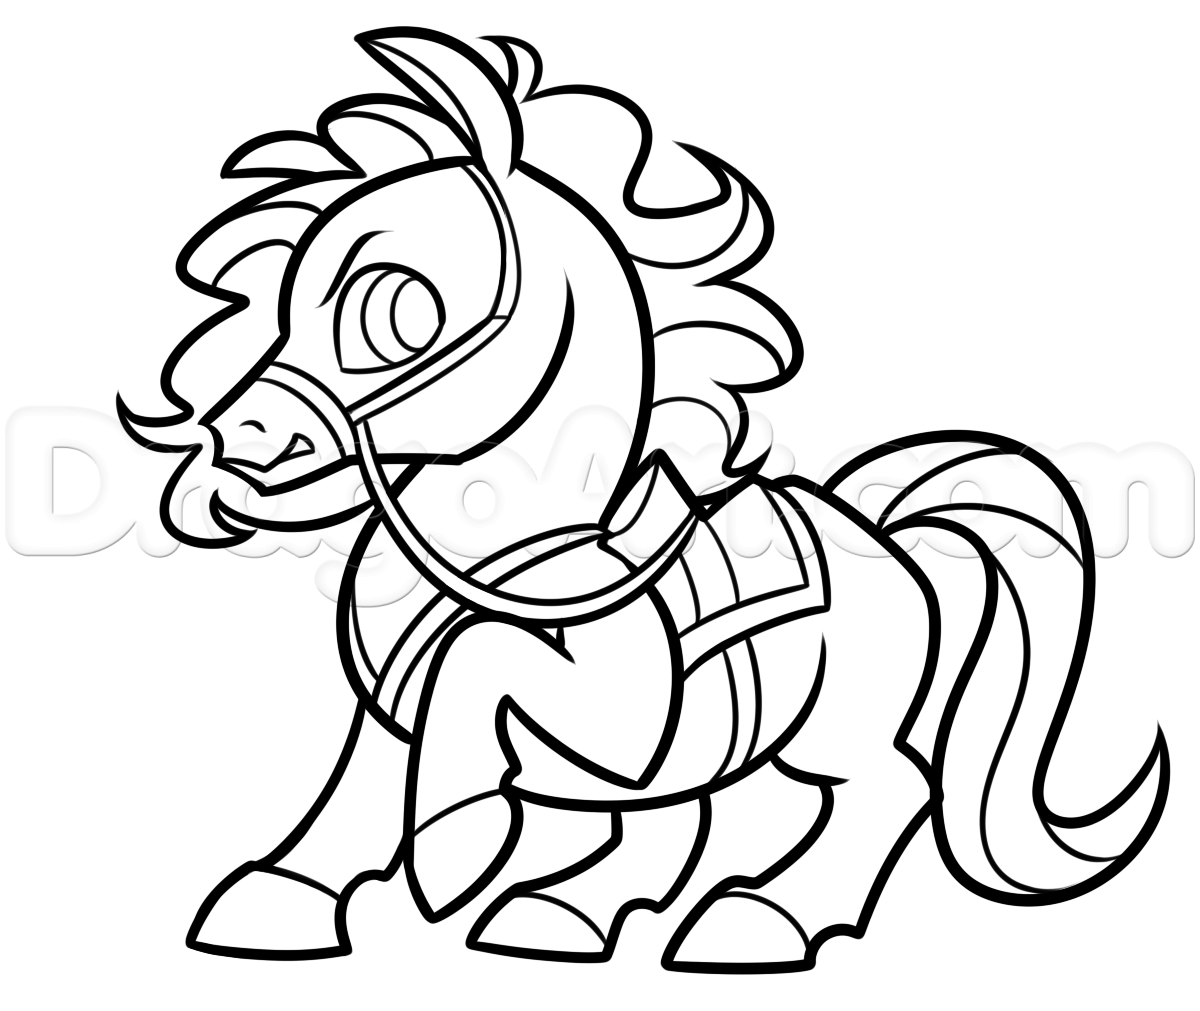 1200x1011 Draw Maximus From Tangled Chibi Style, Step By Step, Chibis, Draw